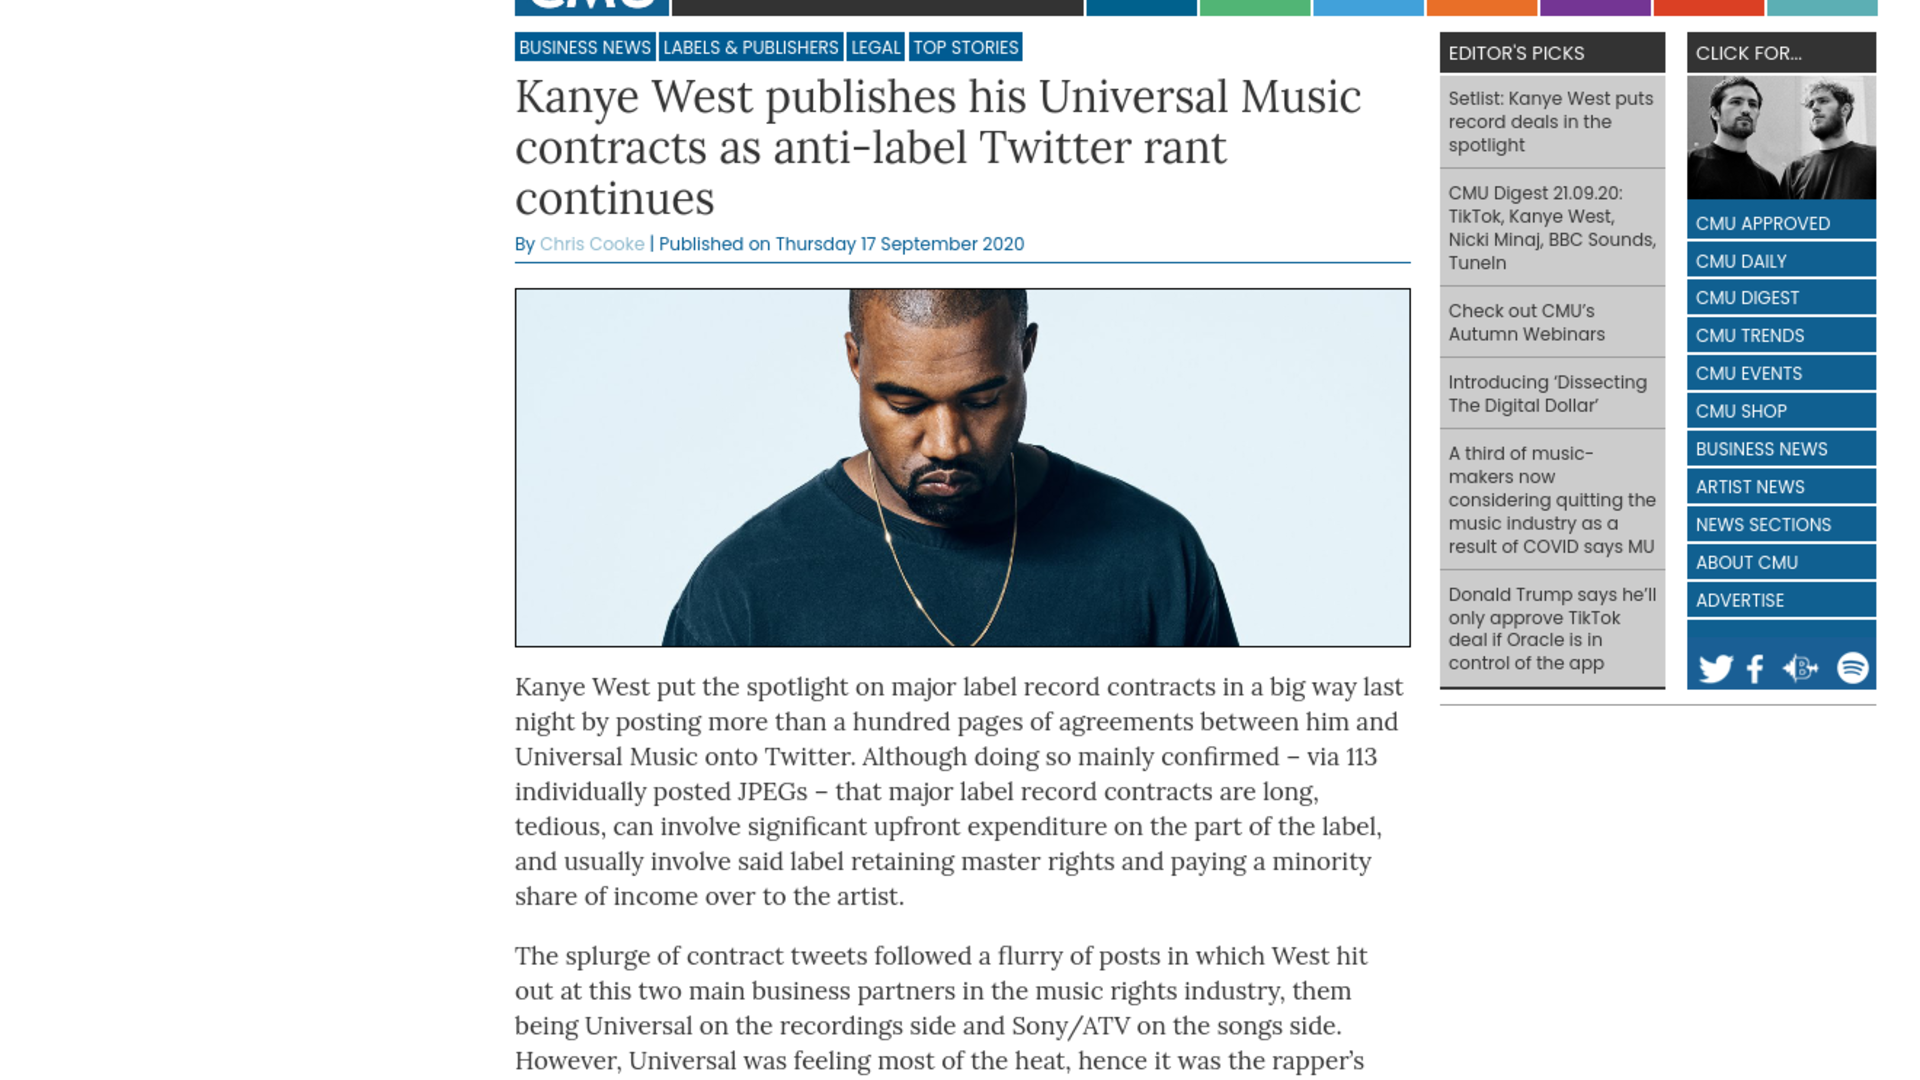 Fairness Rocks News Kanye West publishes his Universal Music contracts as anti-label Twitter rant continues